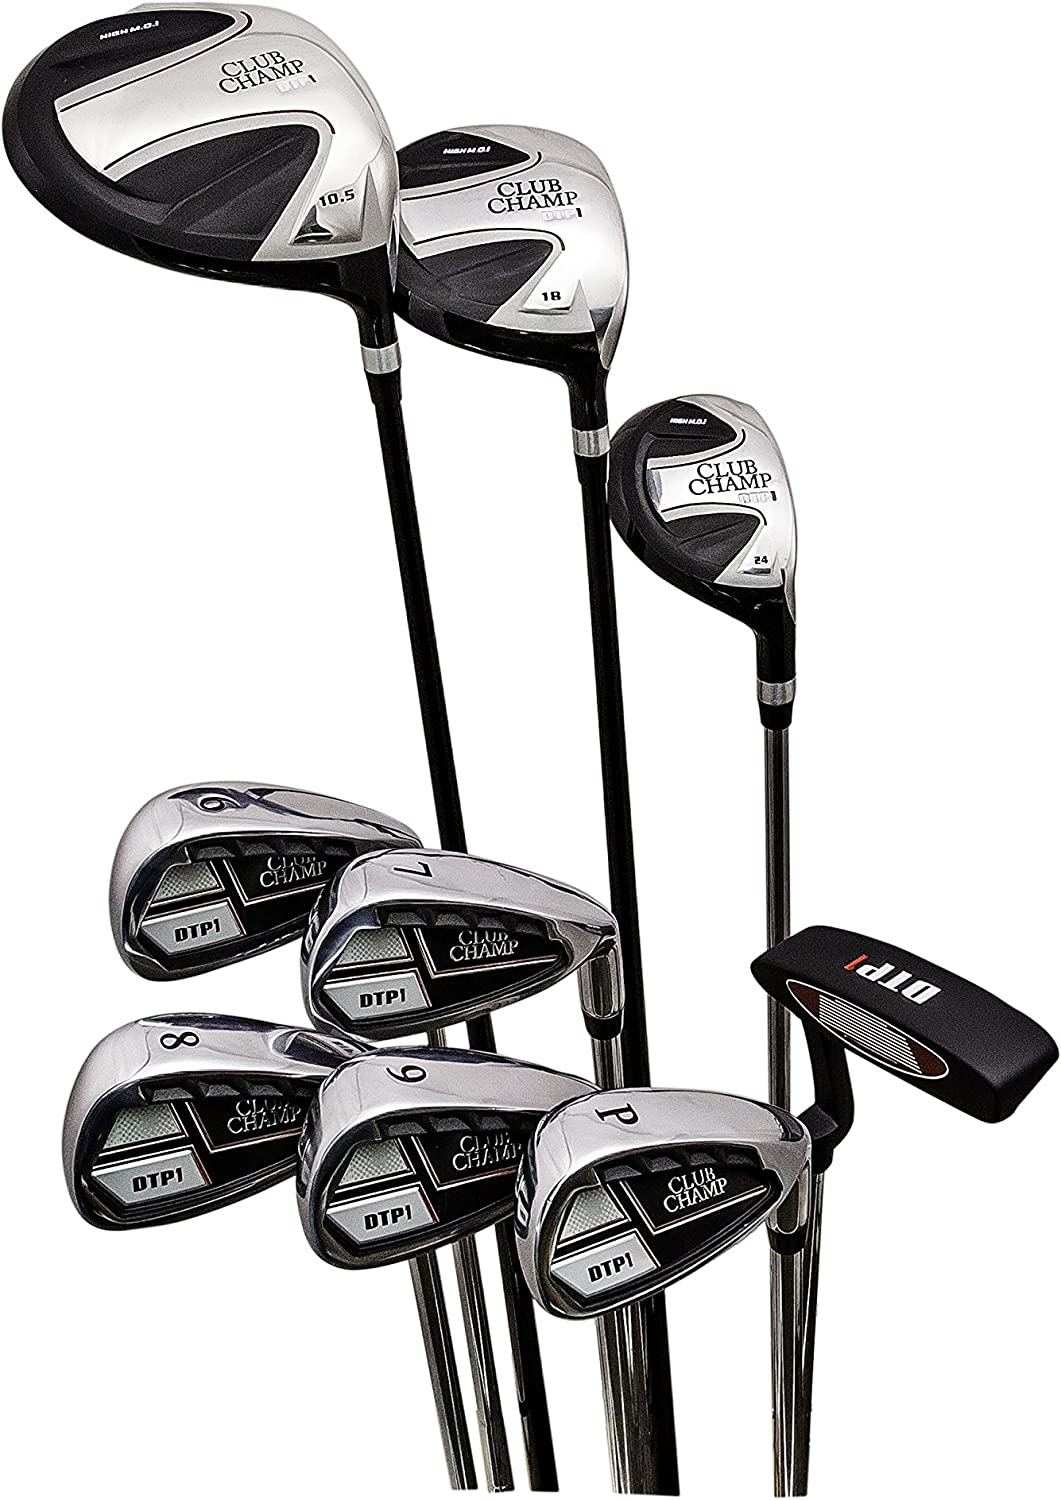 Club Champ Men's Complete DTP (Designed to Play) Golf Club Set